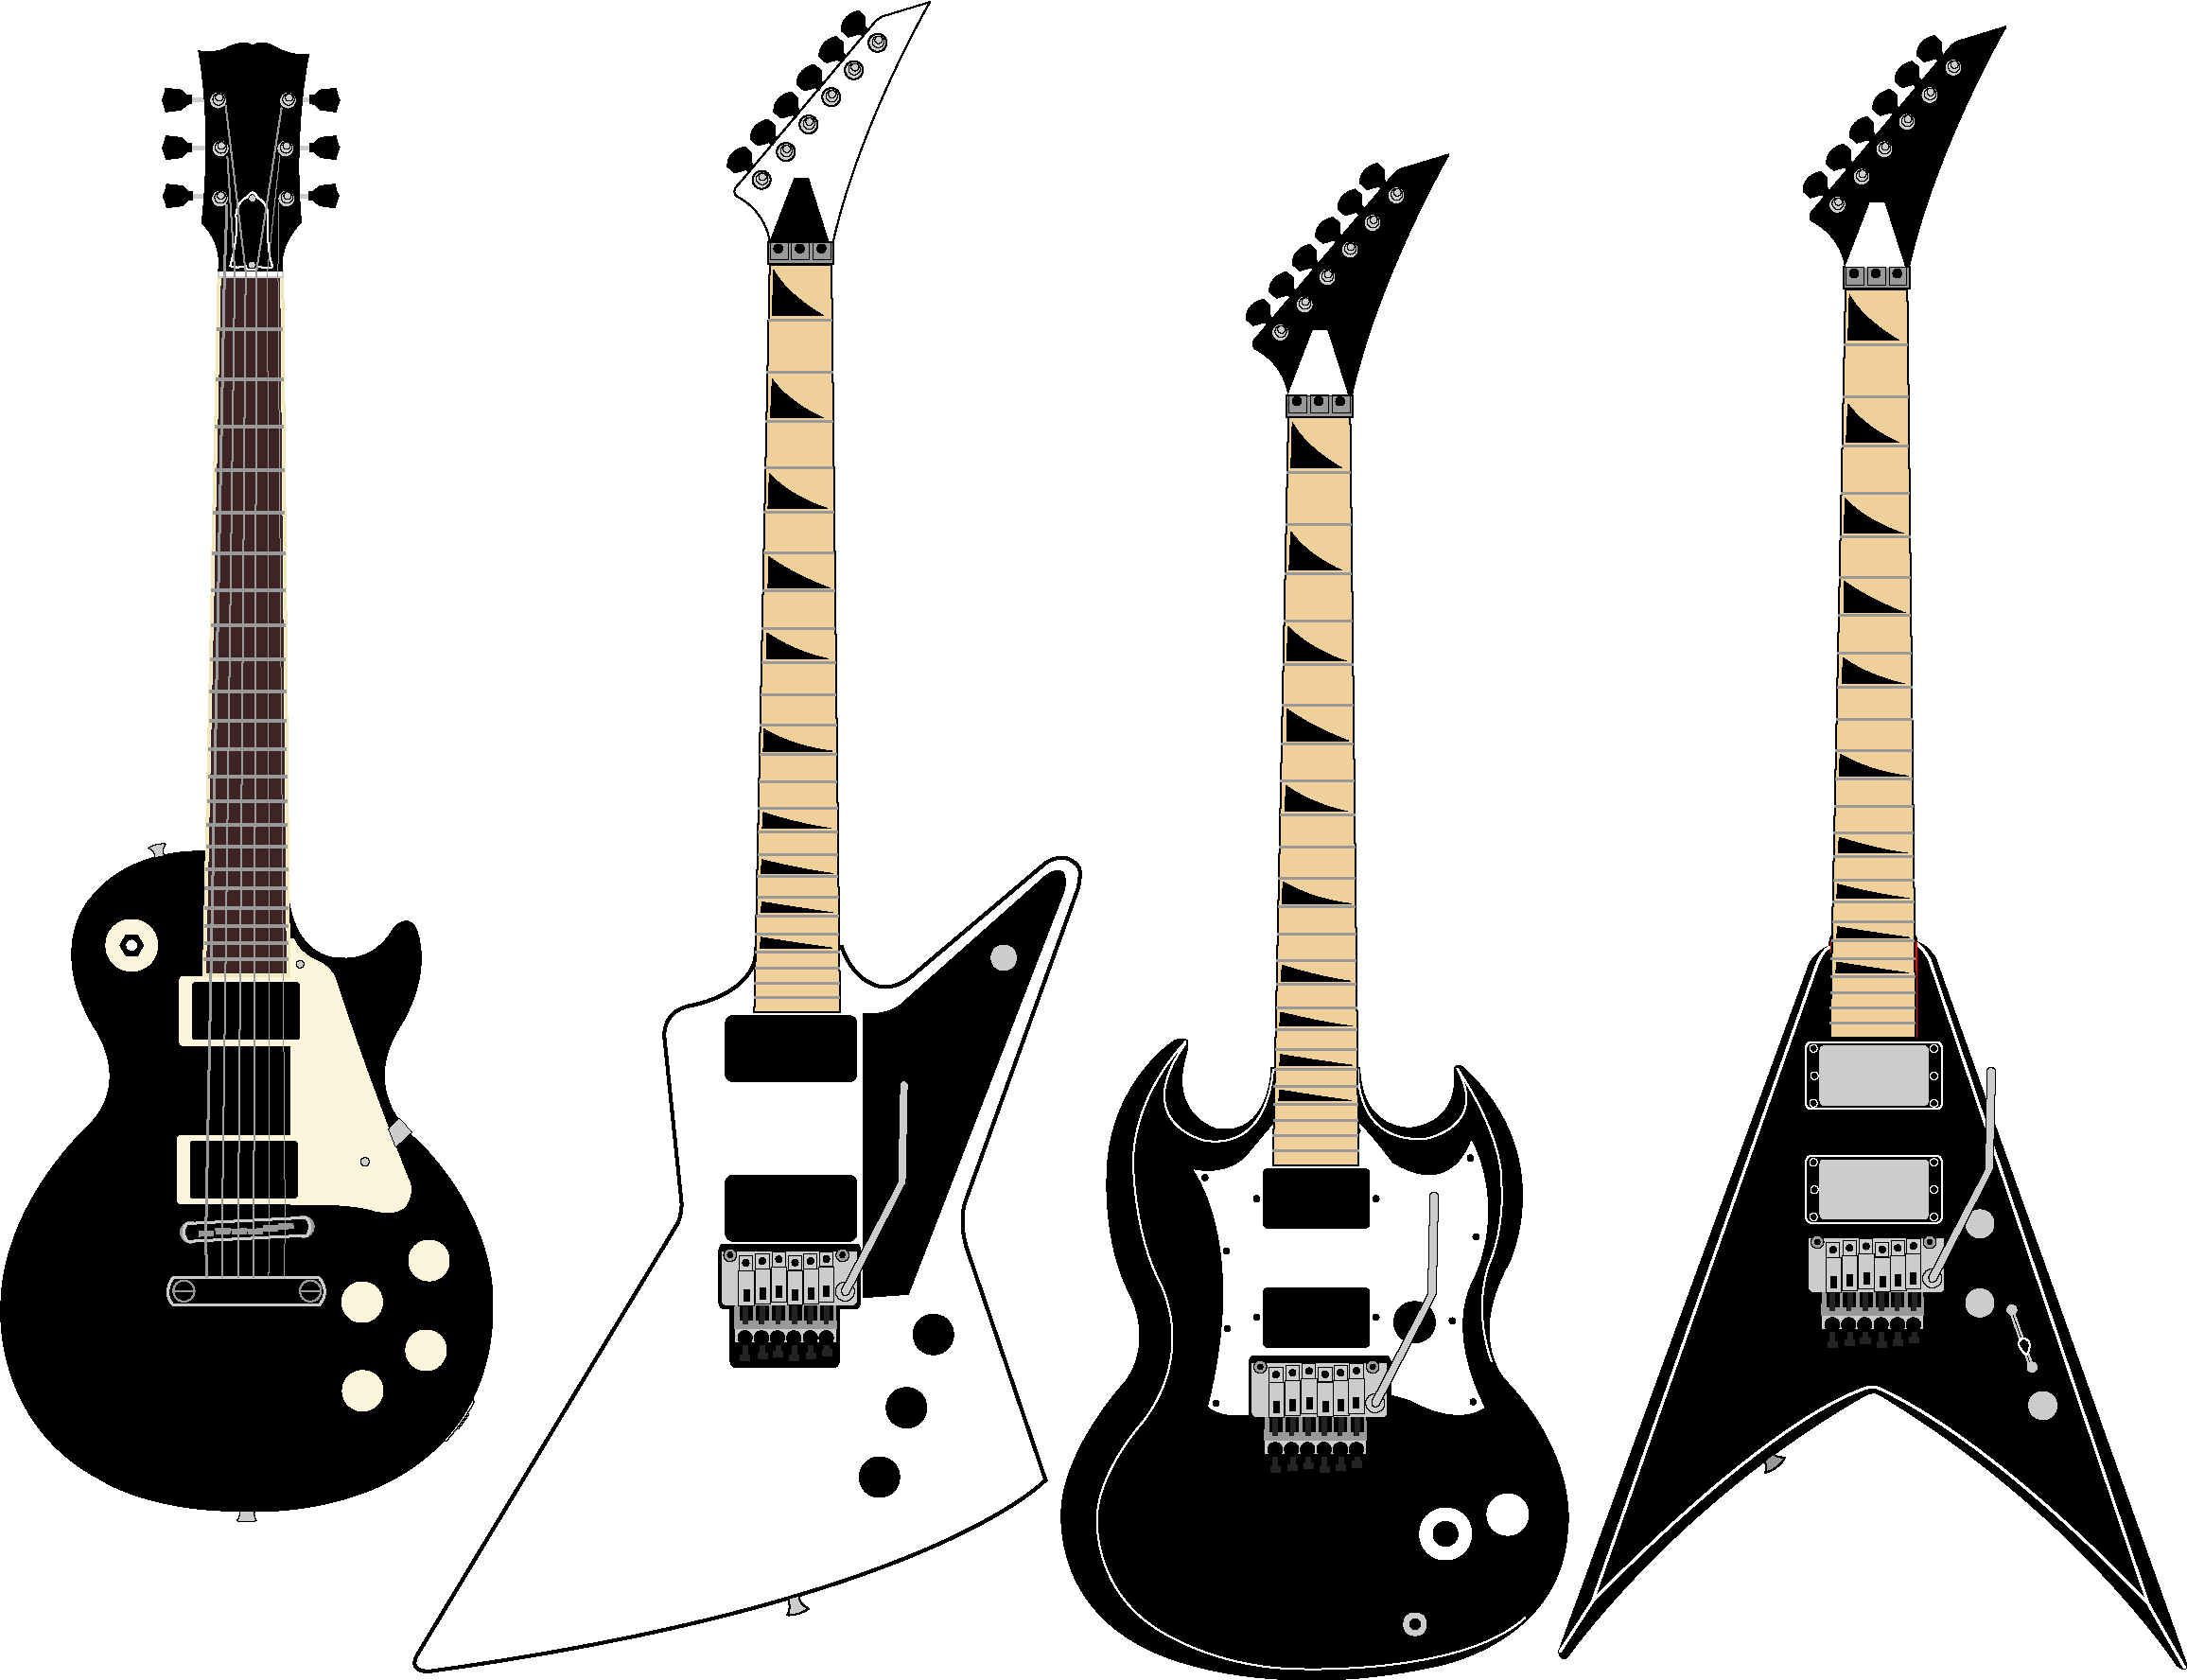 Free Guitar Vector, Download Free Clip Art, Free Clip Art on Clipart.